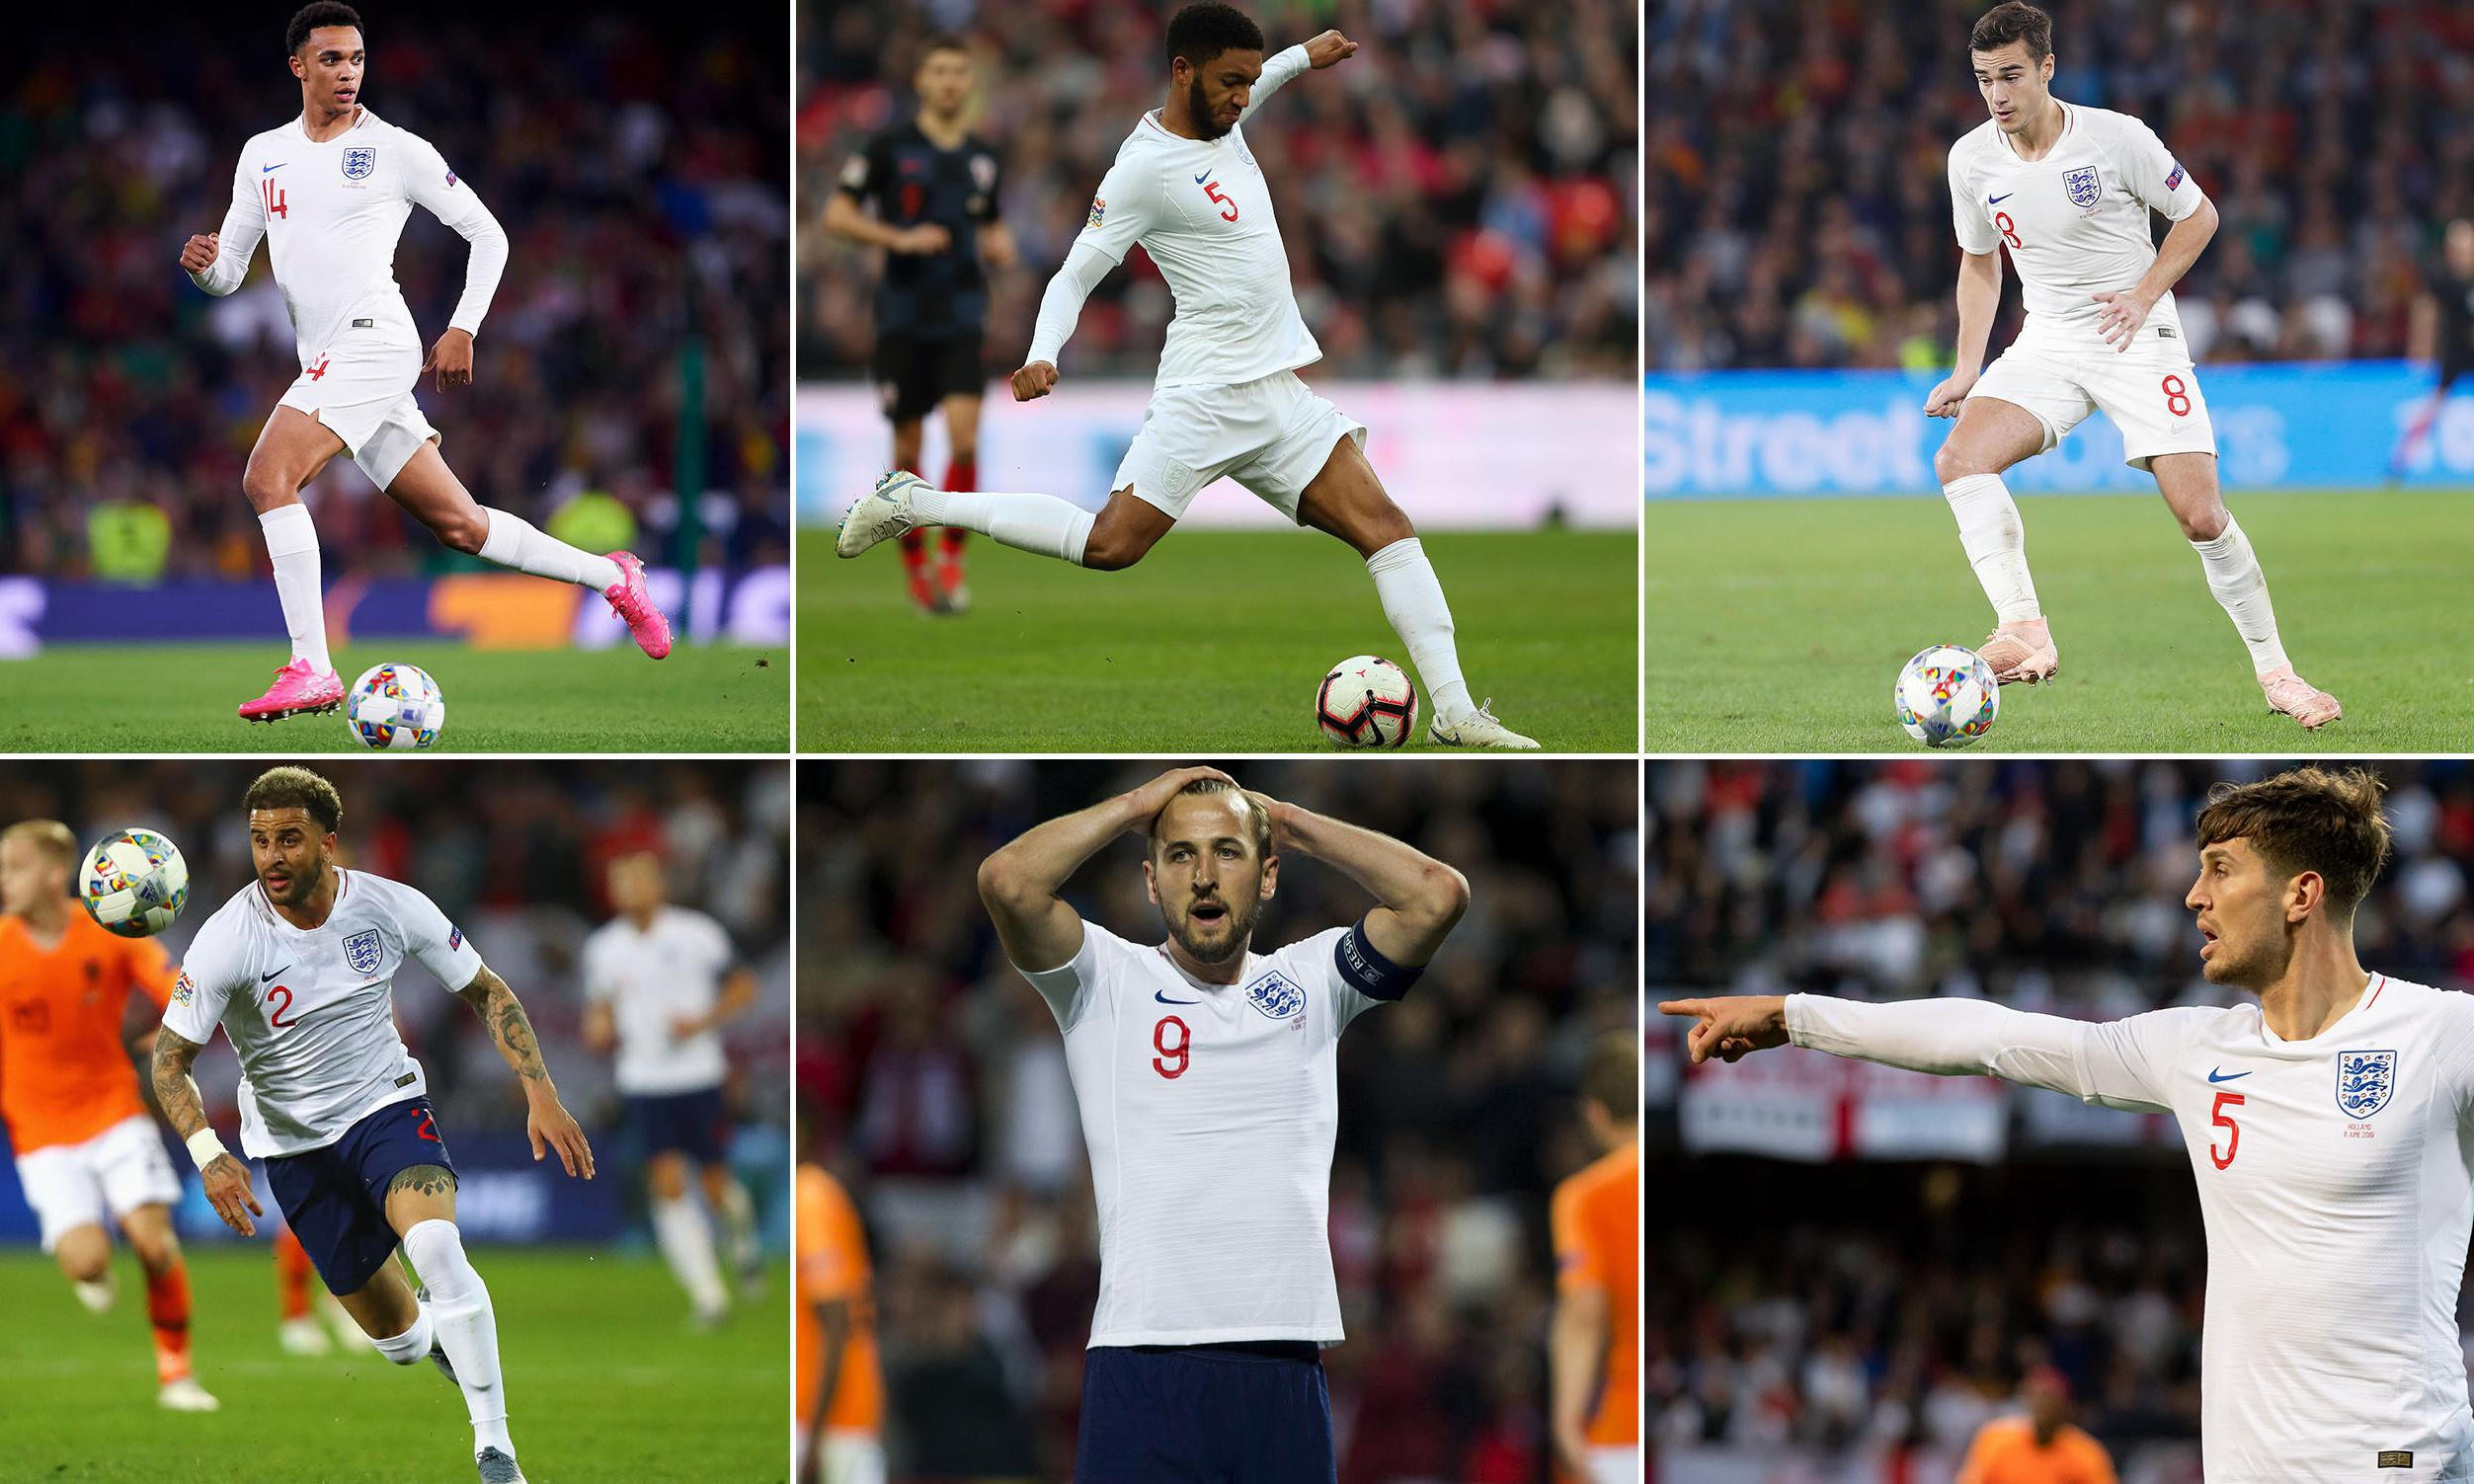 England's winners and losers during the Nations League campaign